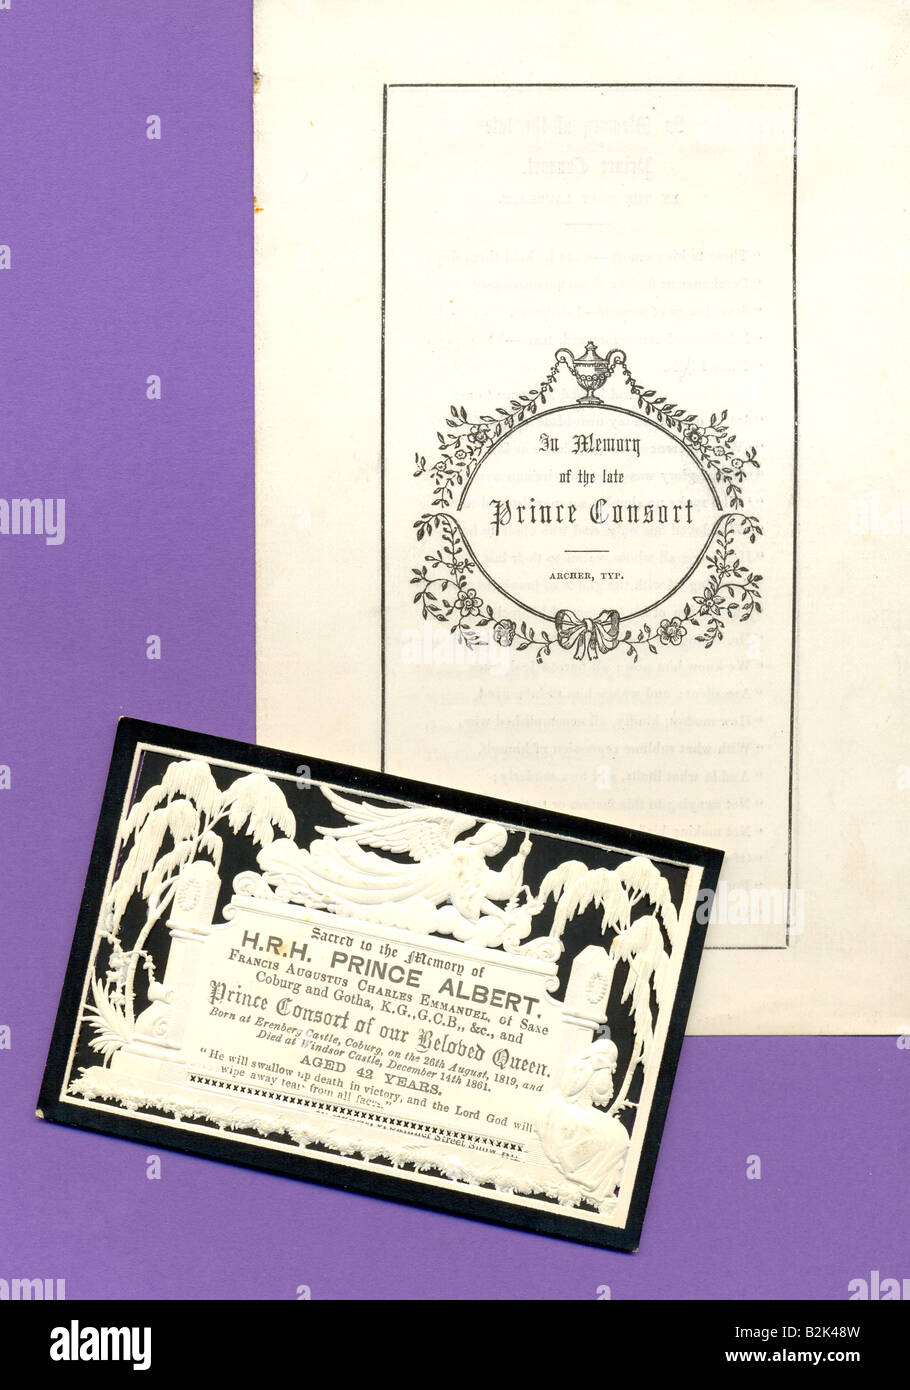 Mourning card and Poet Laureate's lament for death of Prince Albert 1861 - Stock Image